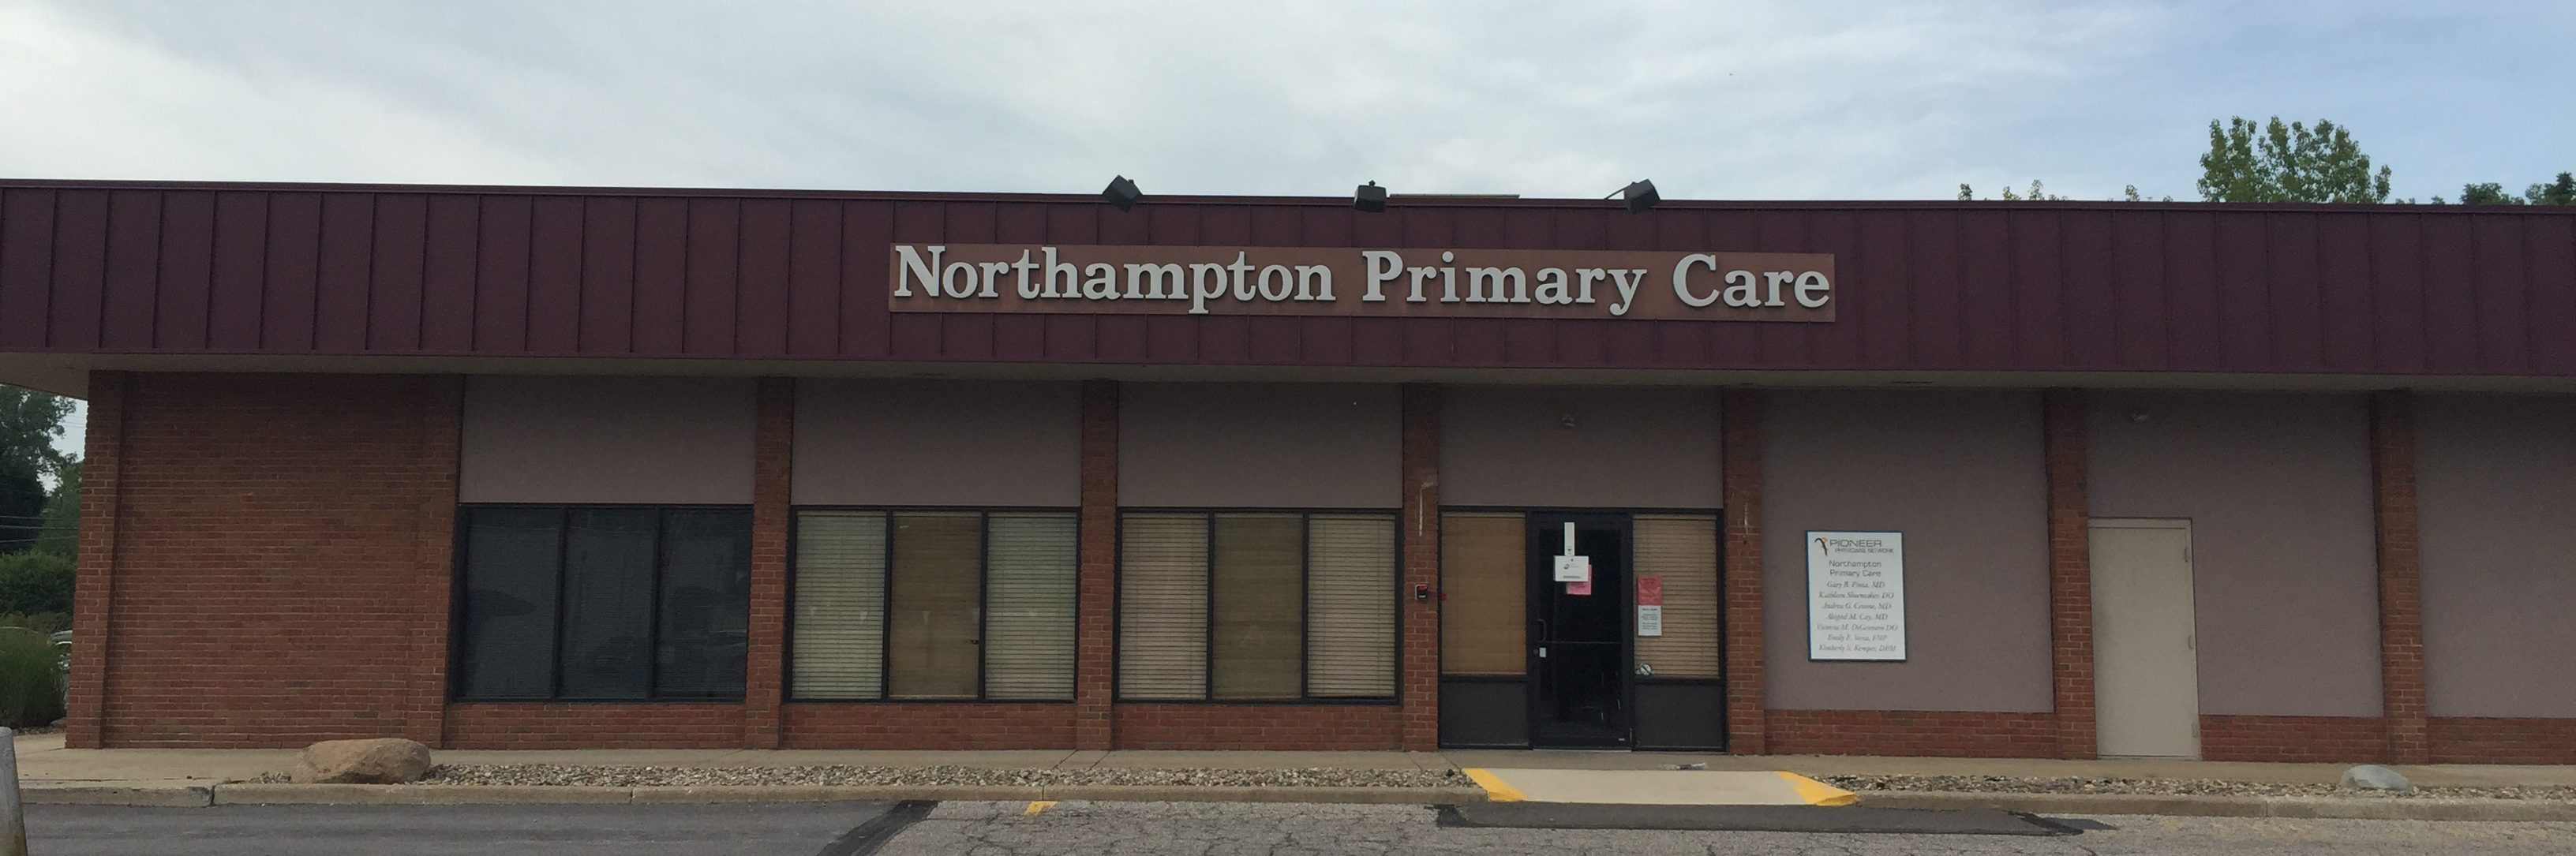 Northampton Primary Care – Pioneer Physicians Network